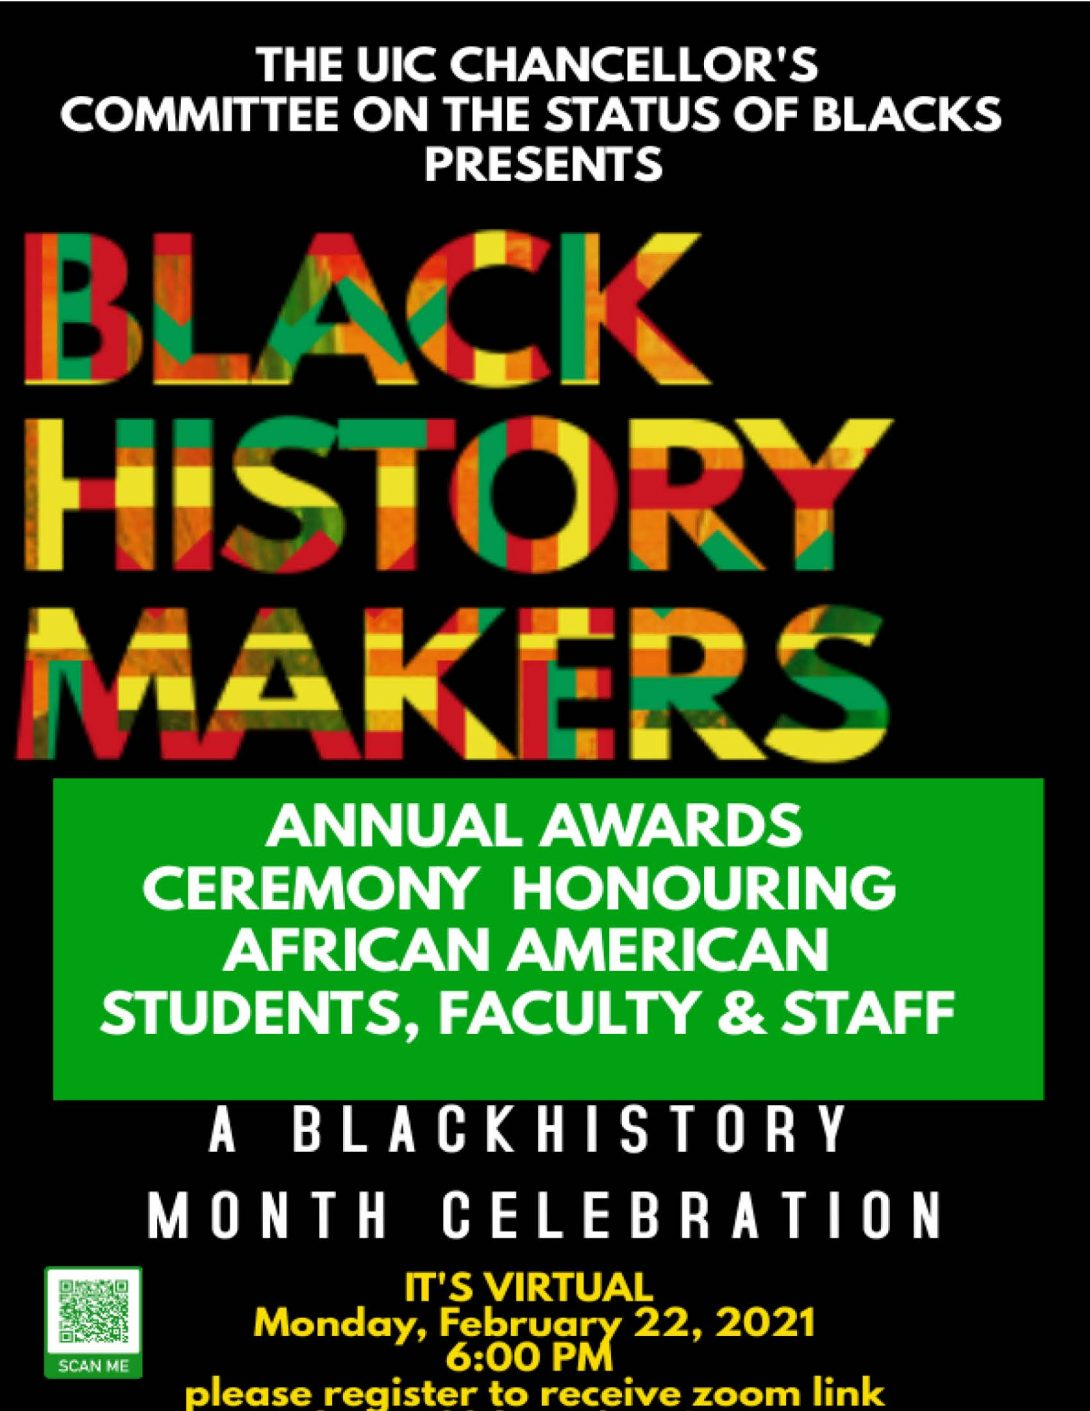 black background with green font that reads Black History Makers